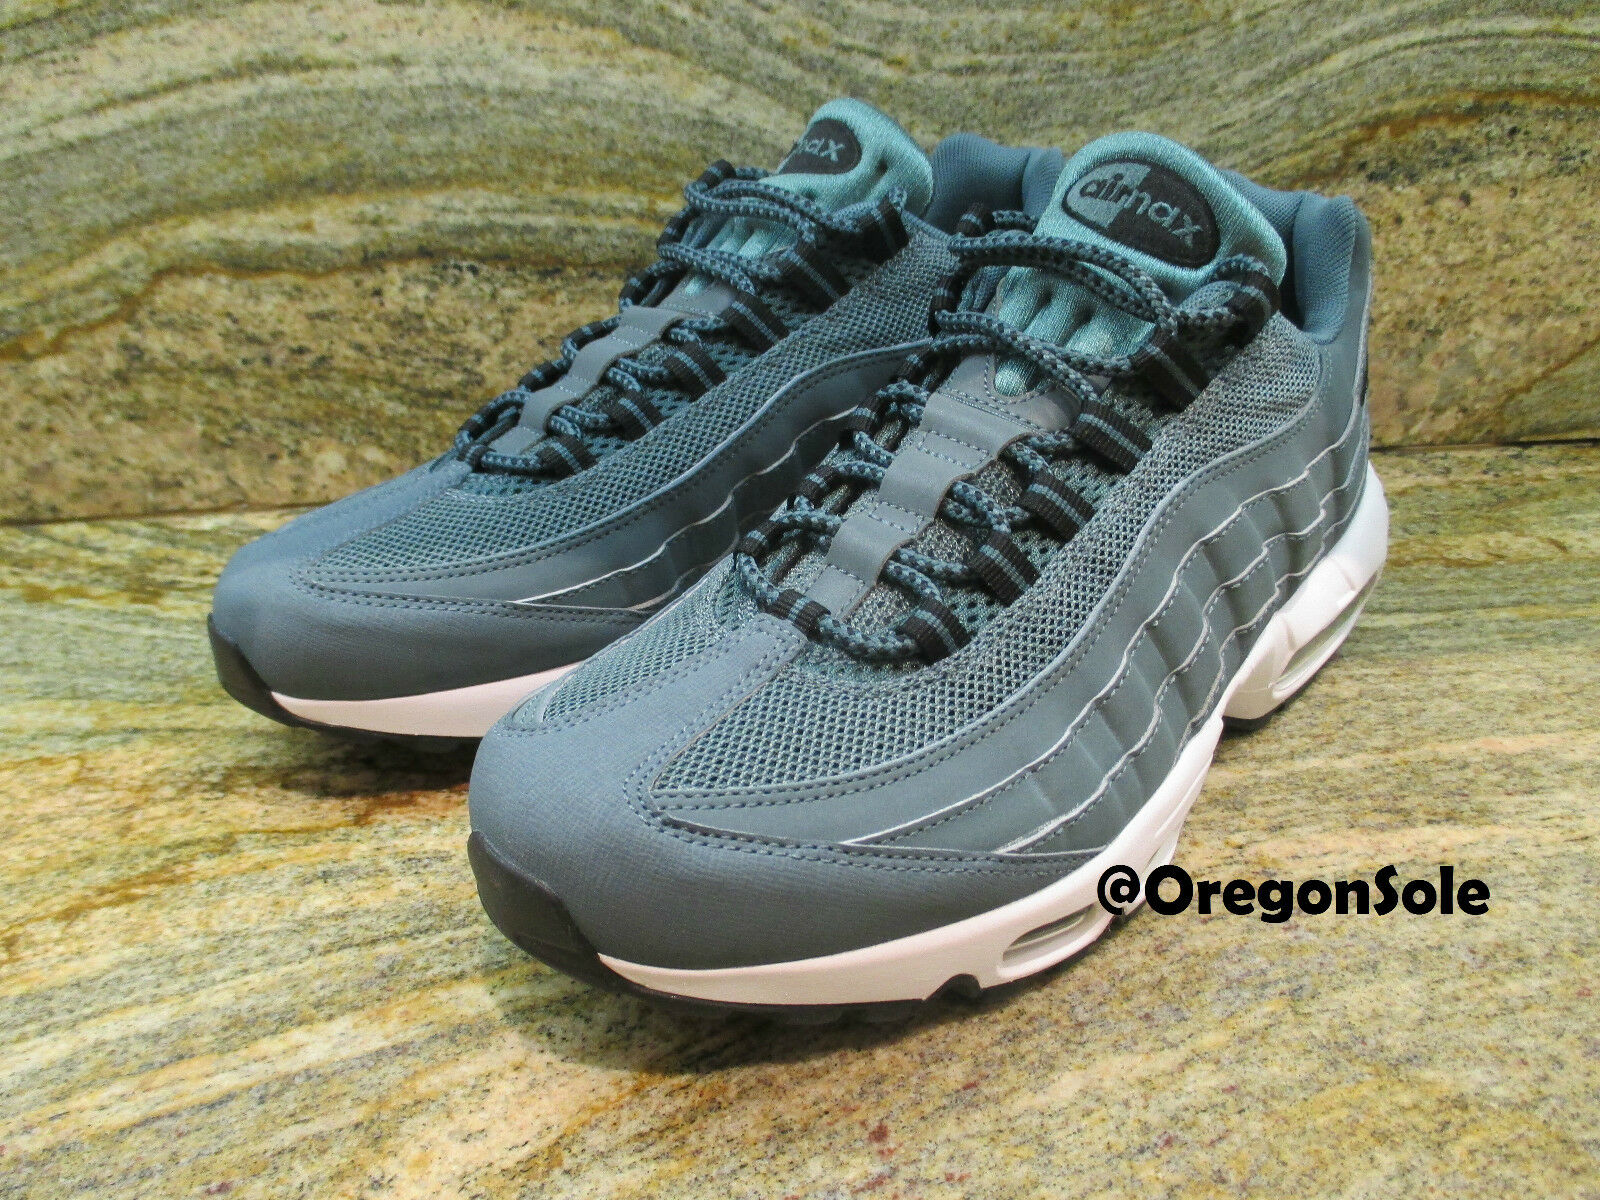 2018 Unreleased Nike Air Max 95 Teal Sample Price reduction New shoes for men and women, limited time discount